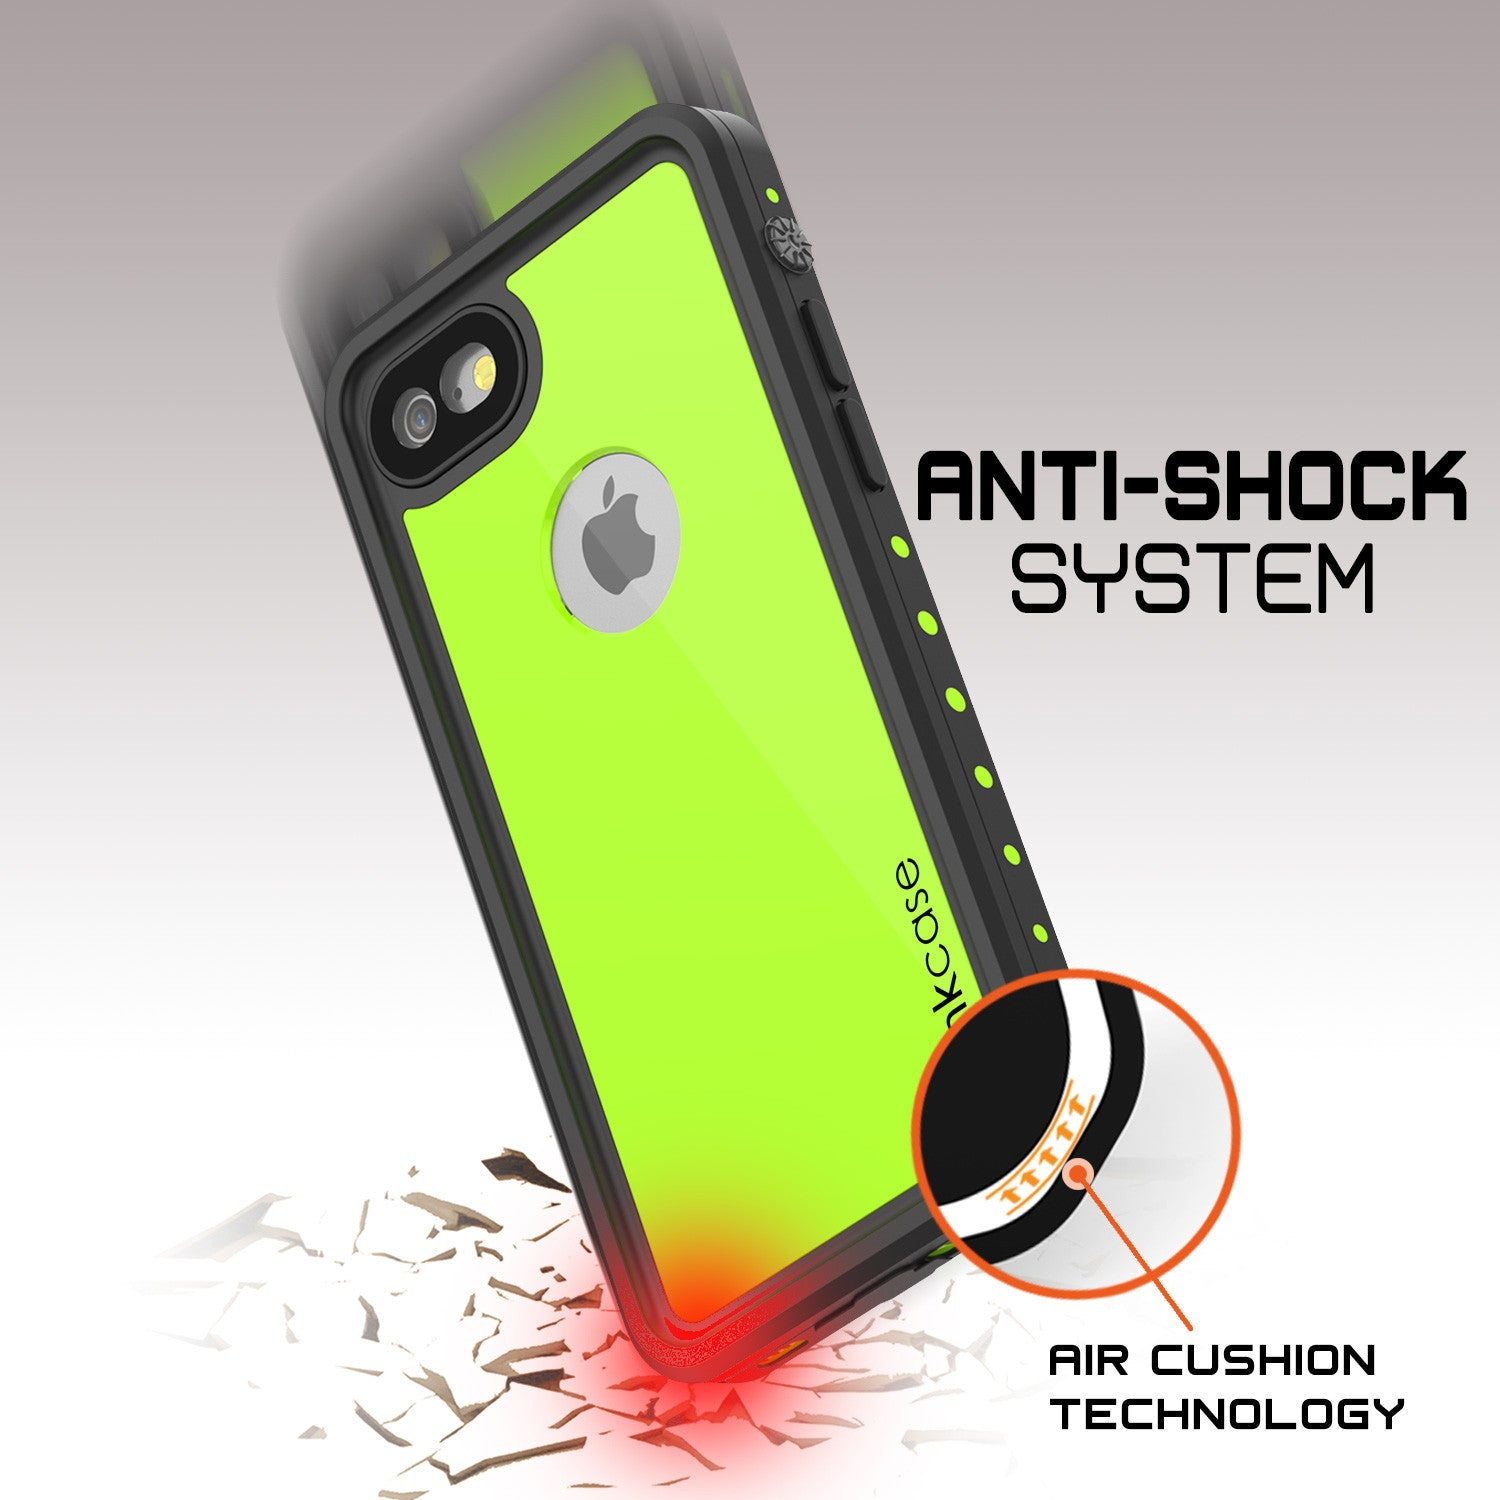 iPhone 7 Waterproof IP68 Case, Punkcase [Light Green] [StudStar Series] [Slim Fit] [Dirt/Snow Proof]